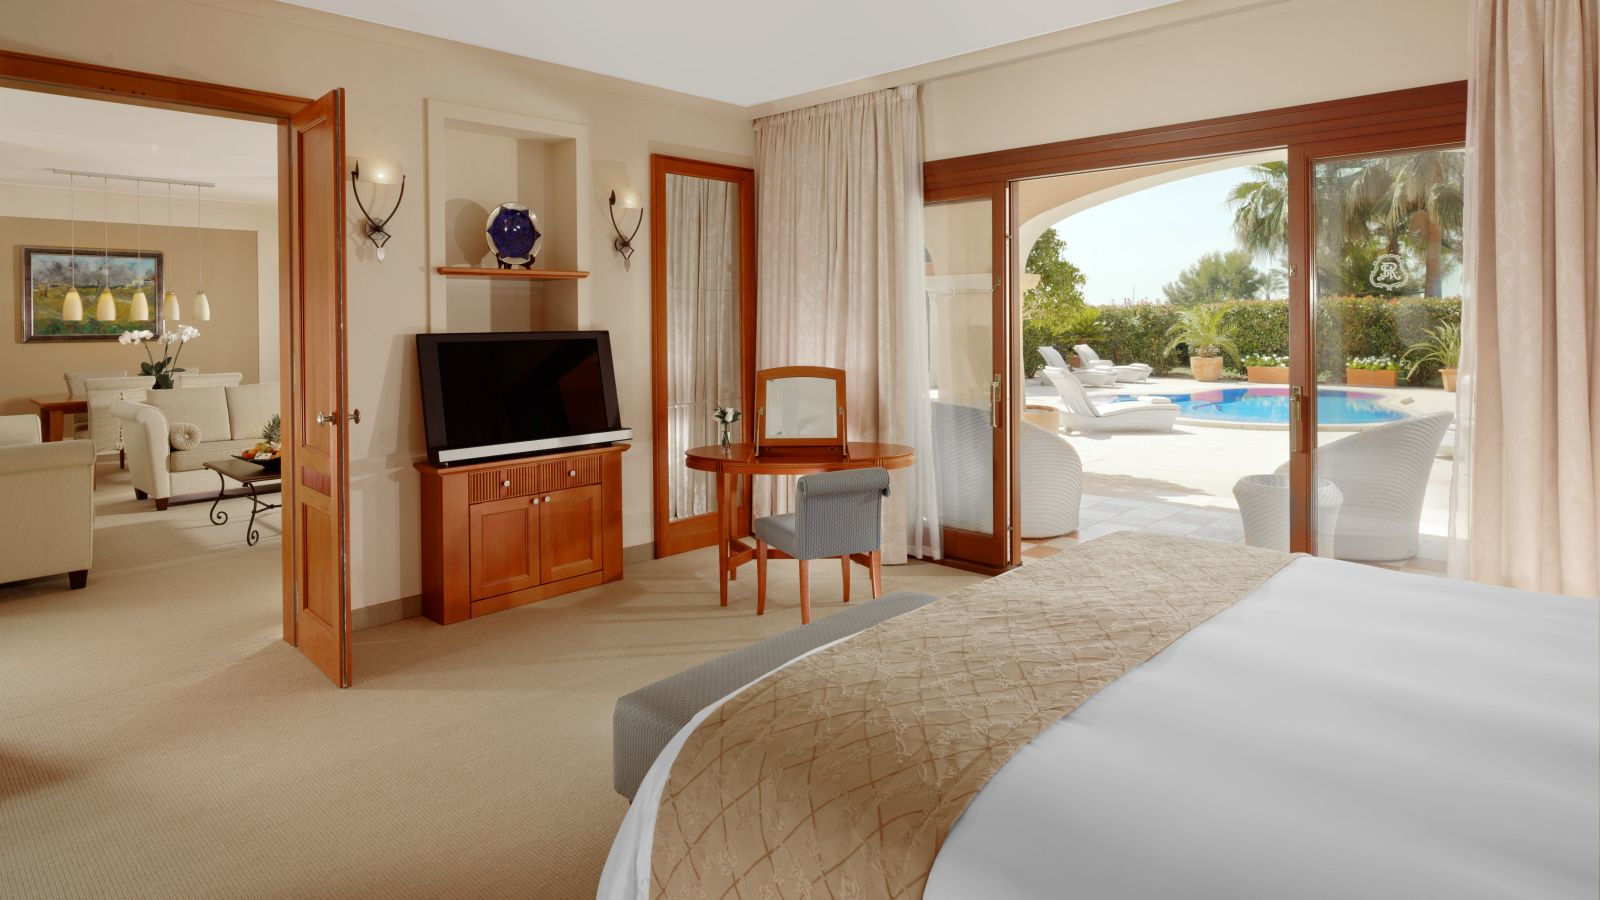 Blue Oasis Suite | The St. Regis Mardavall Mallorca Resort